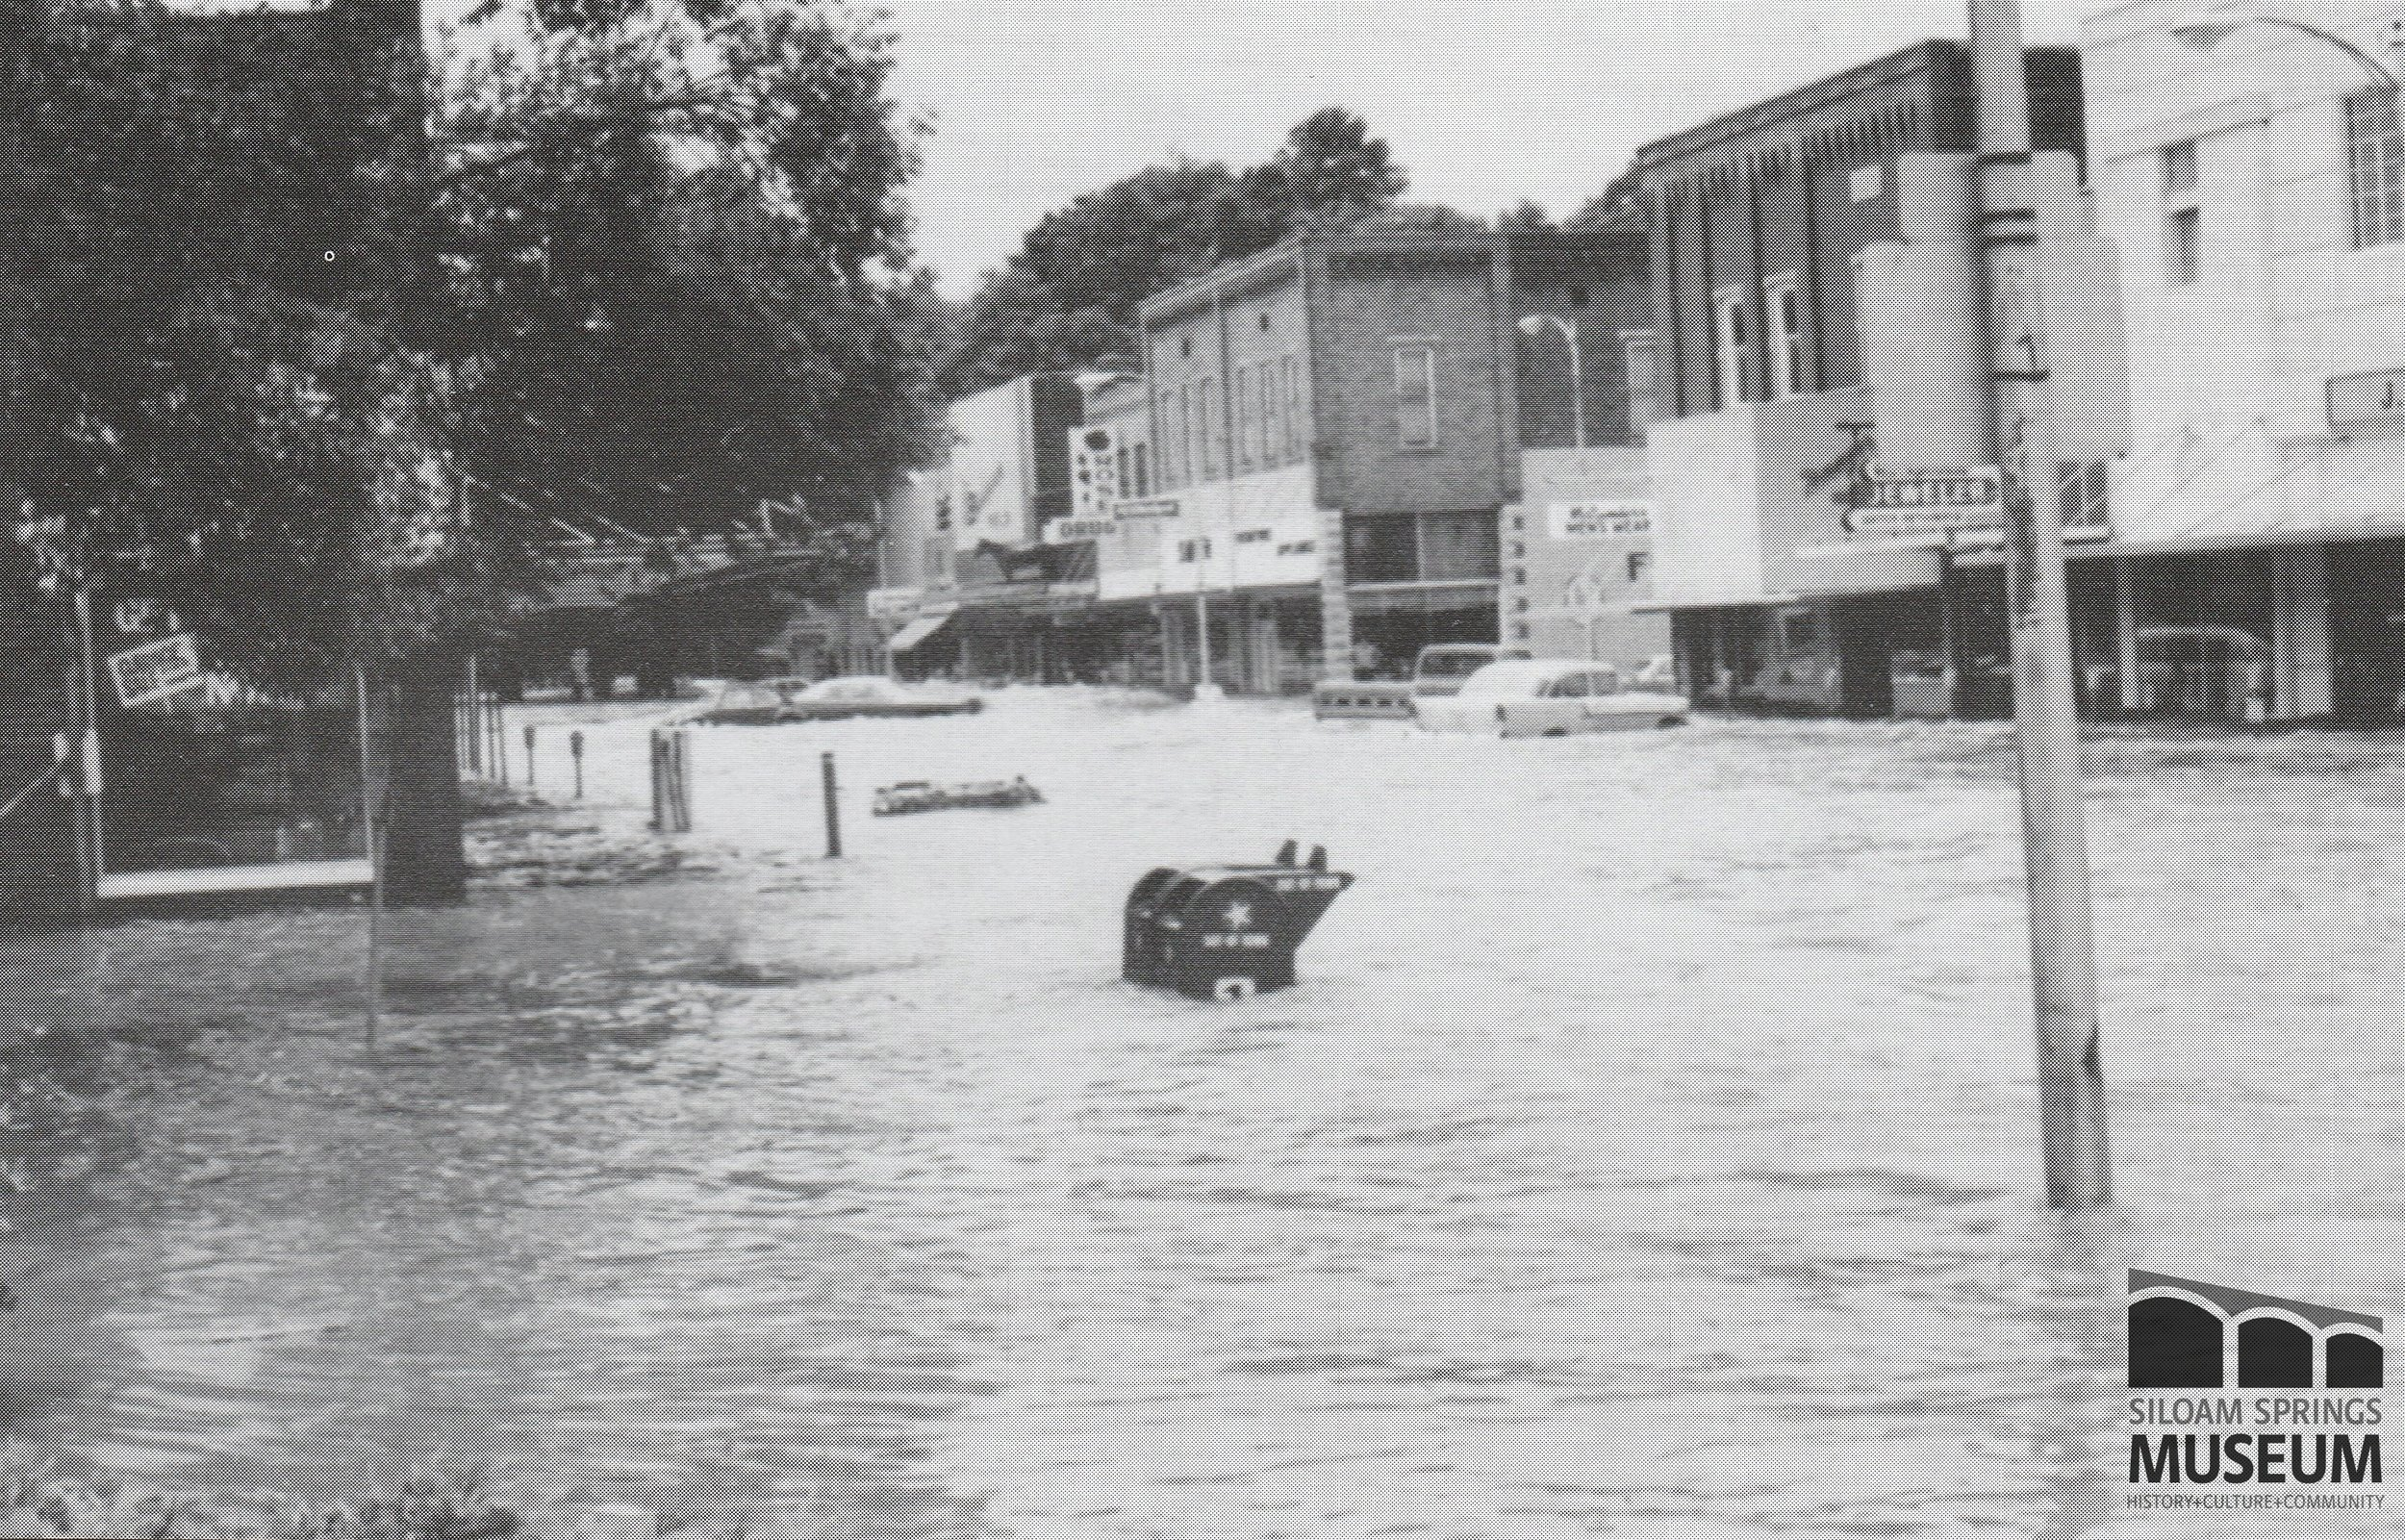 During the 1974 flood, parts of downtown Siloam Springs were under 7 feet of water.